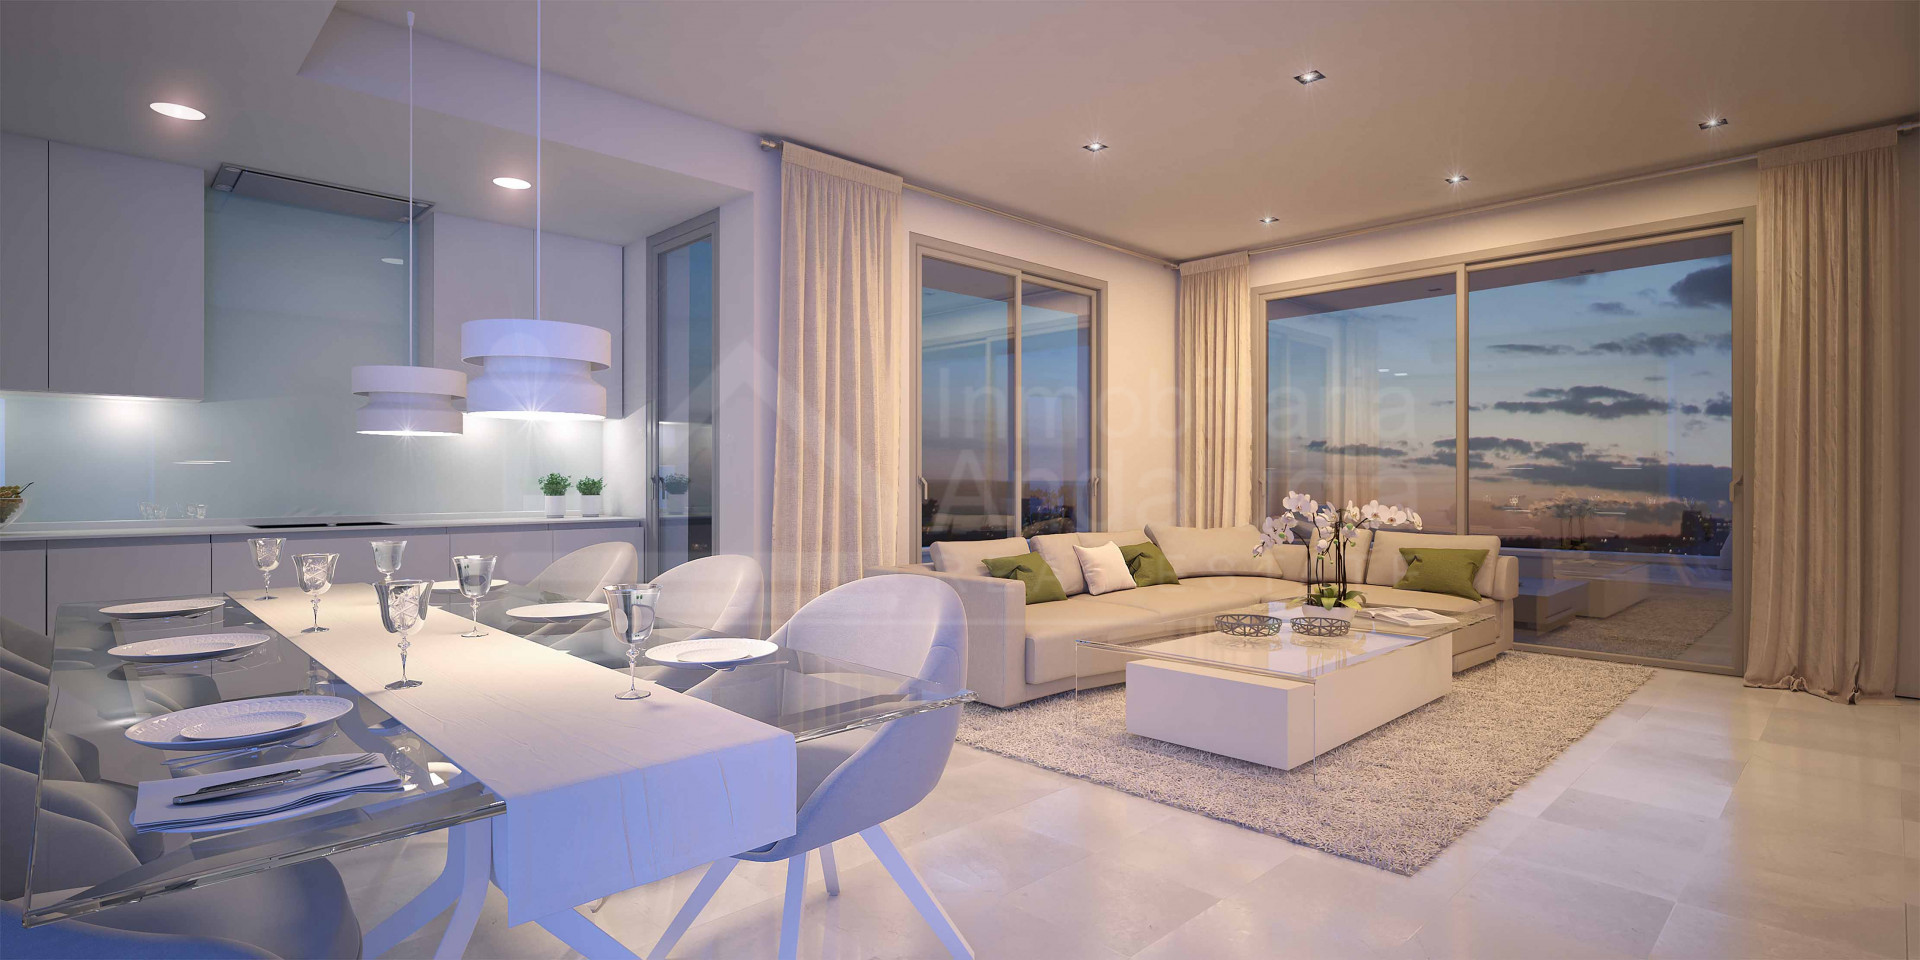 New contemporary 3 bedroom apartment for sale on the New Golden Mile